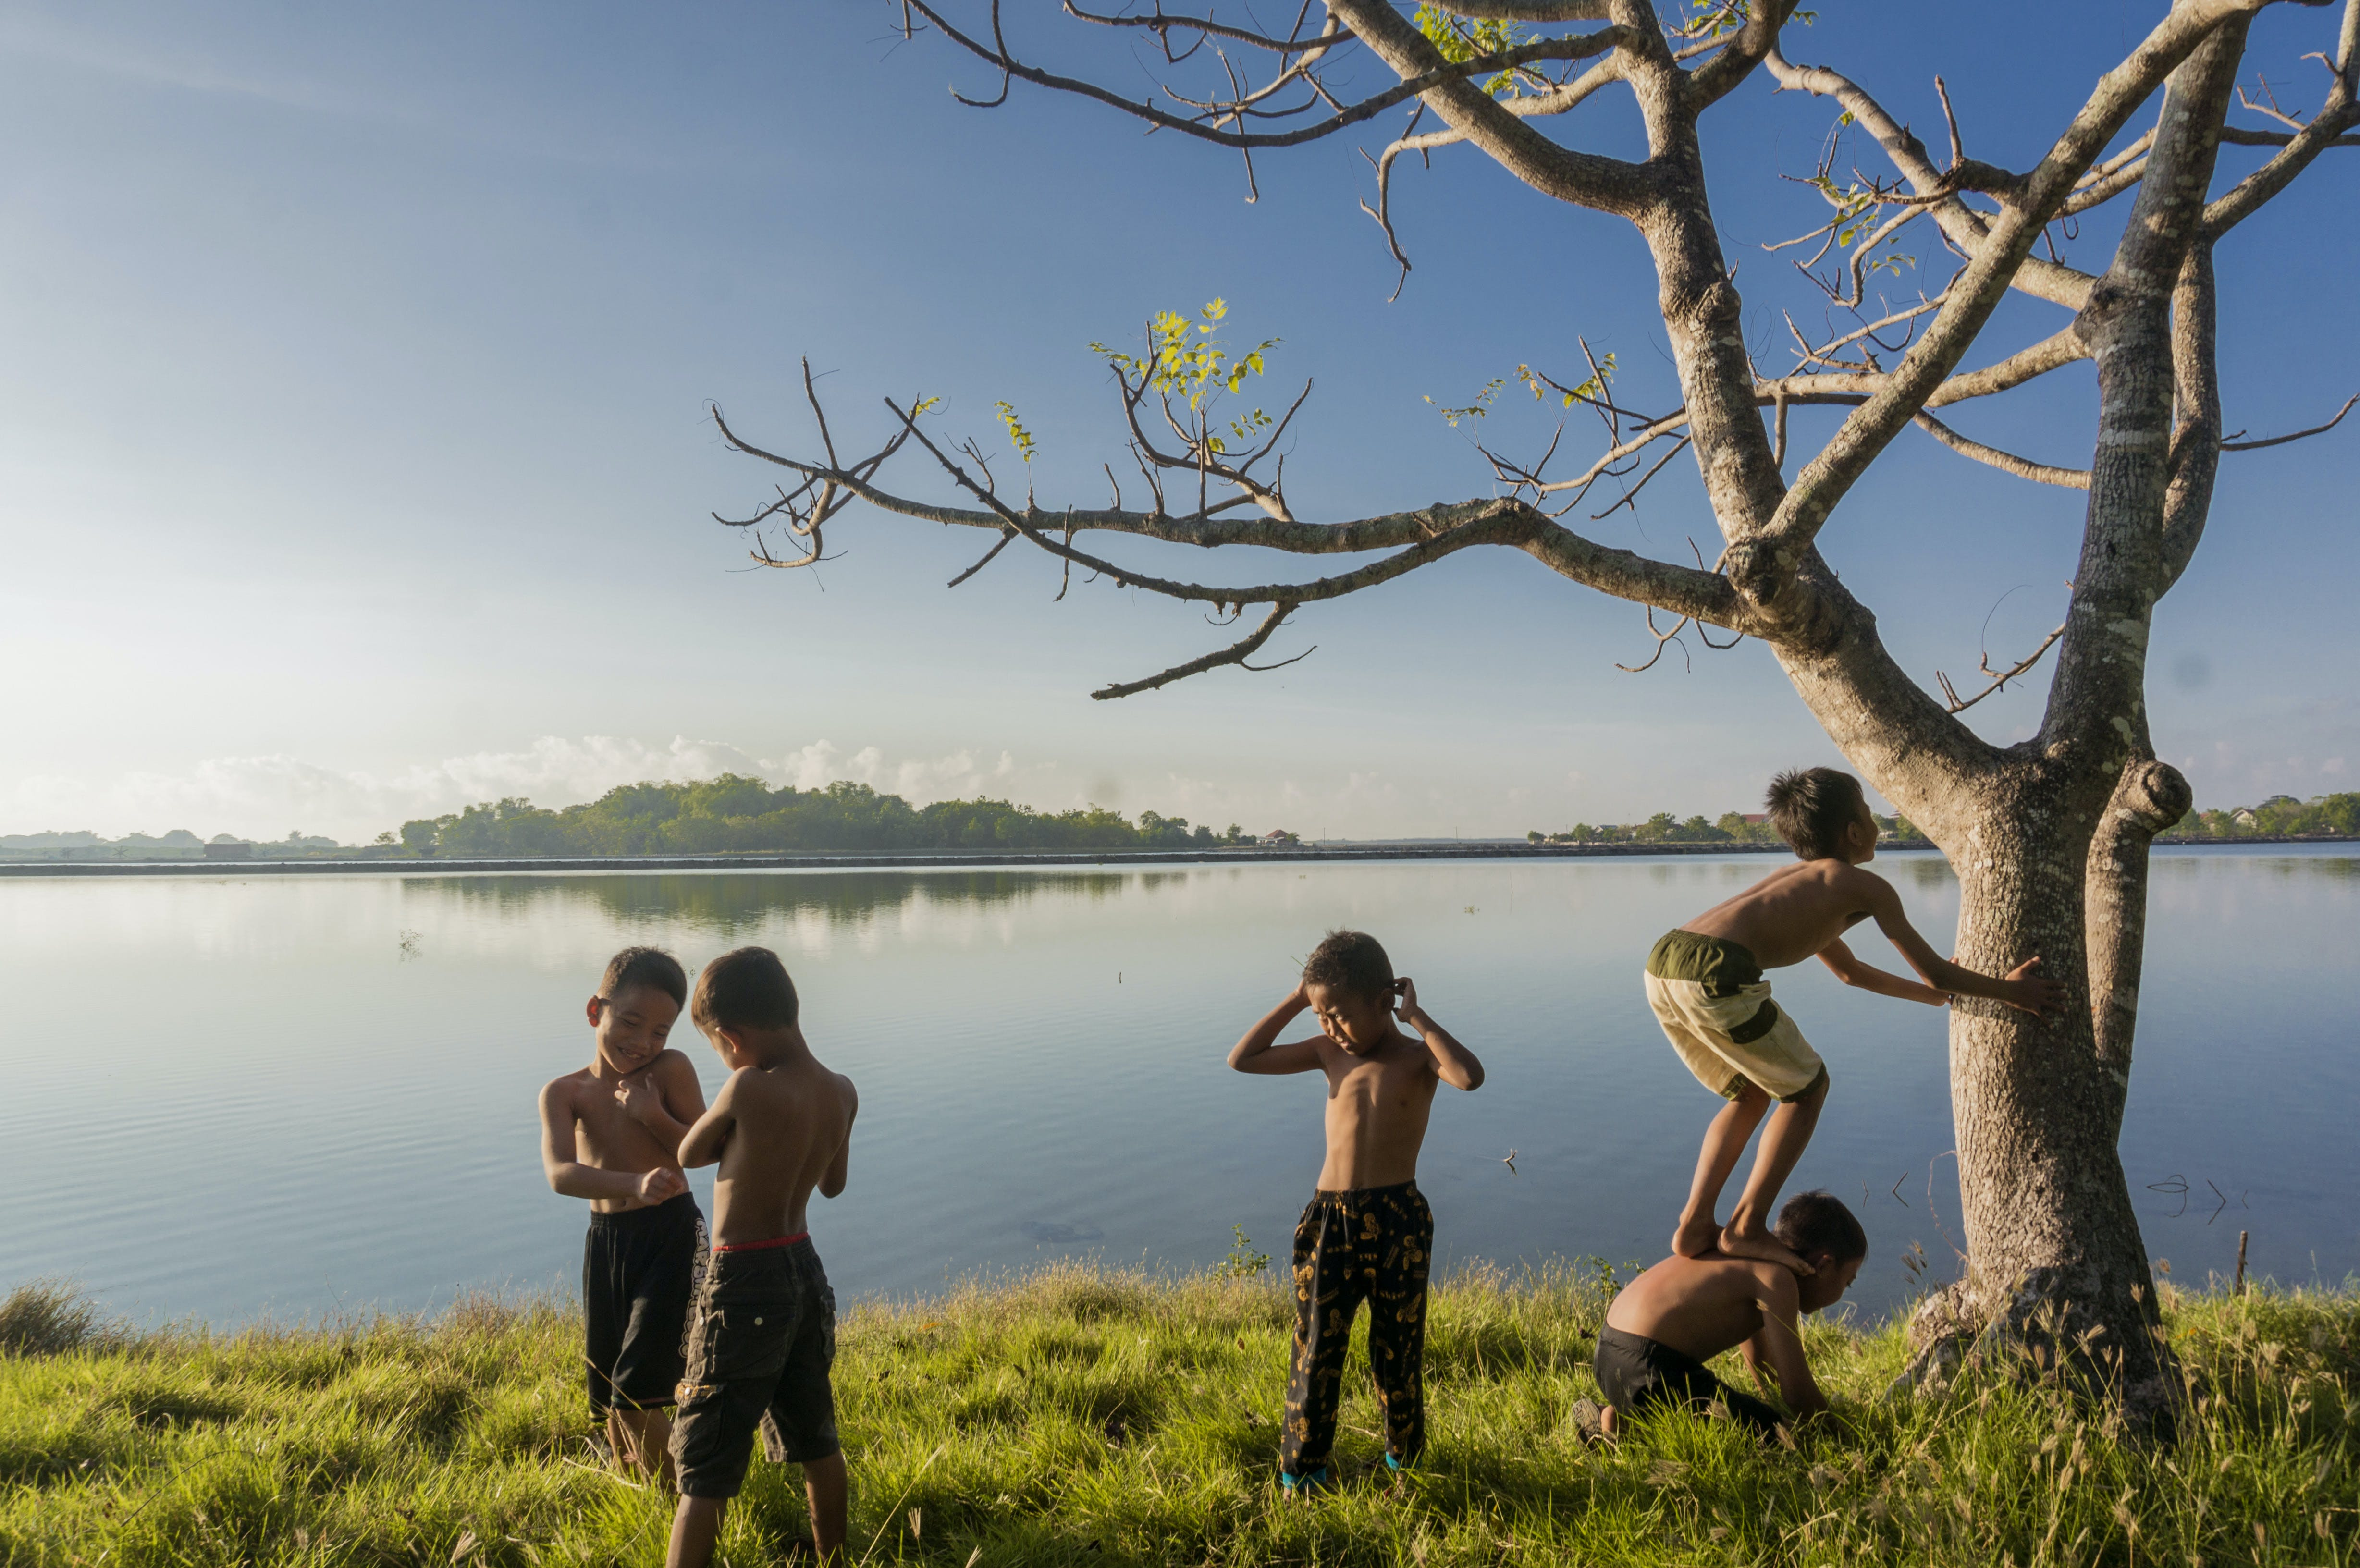 Five Boys Standing Near Body of Water